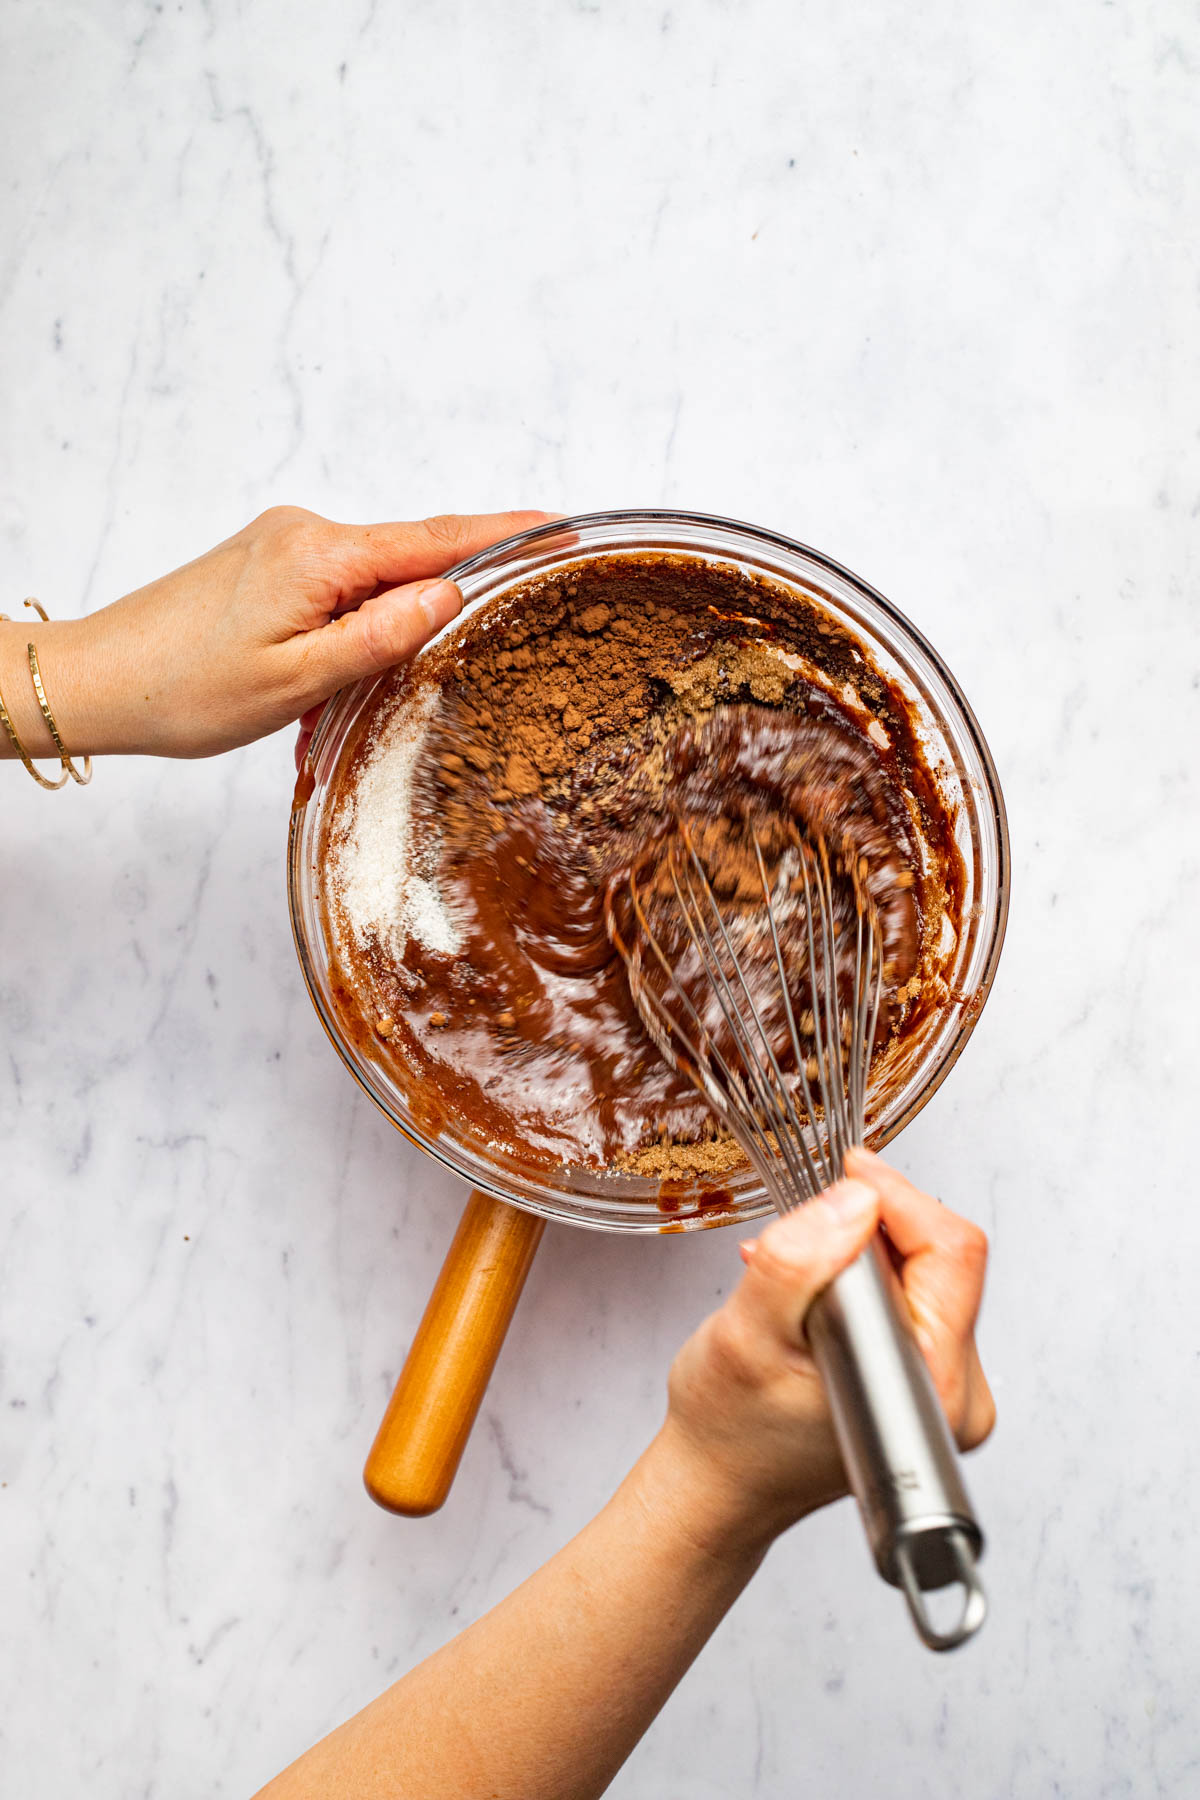 A hand whisking chocolate batter in a glass bowl.